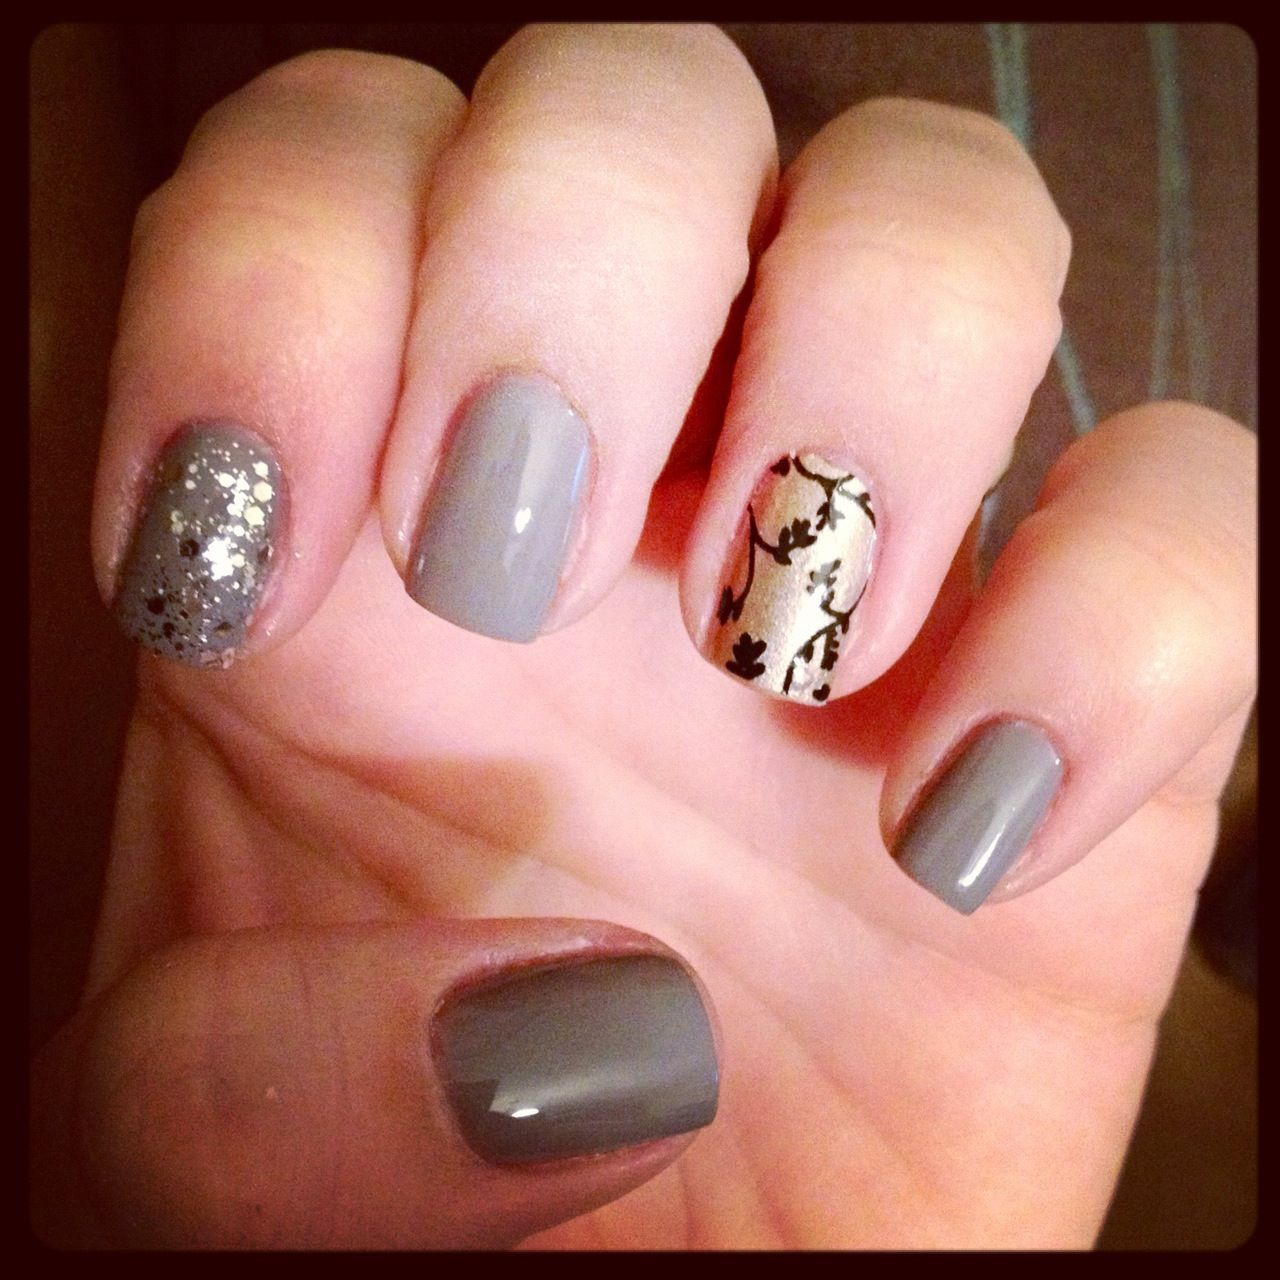 nails Essie Chinchilly with Glitter Accent Nail in Essie Set in ...